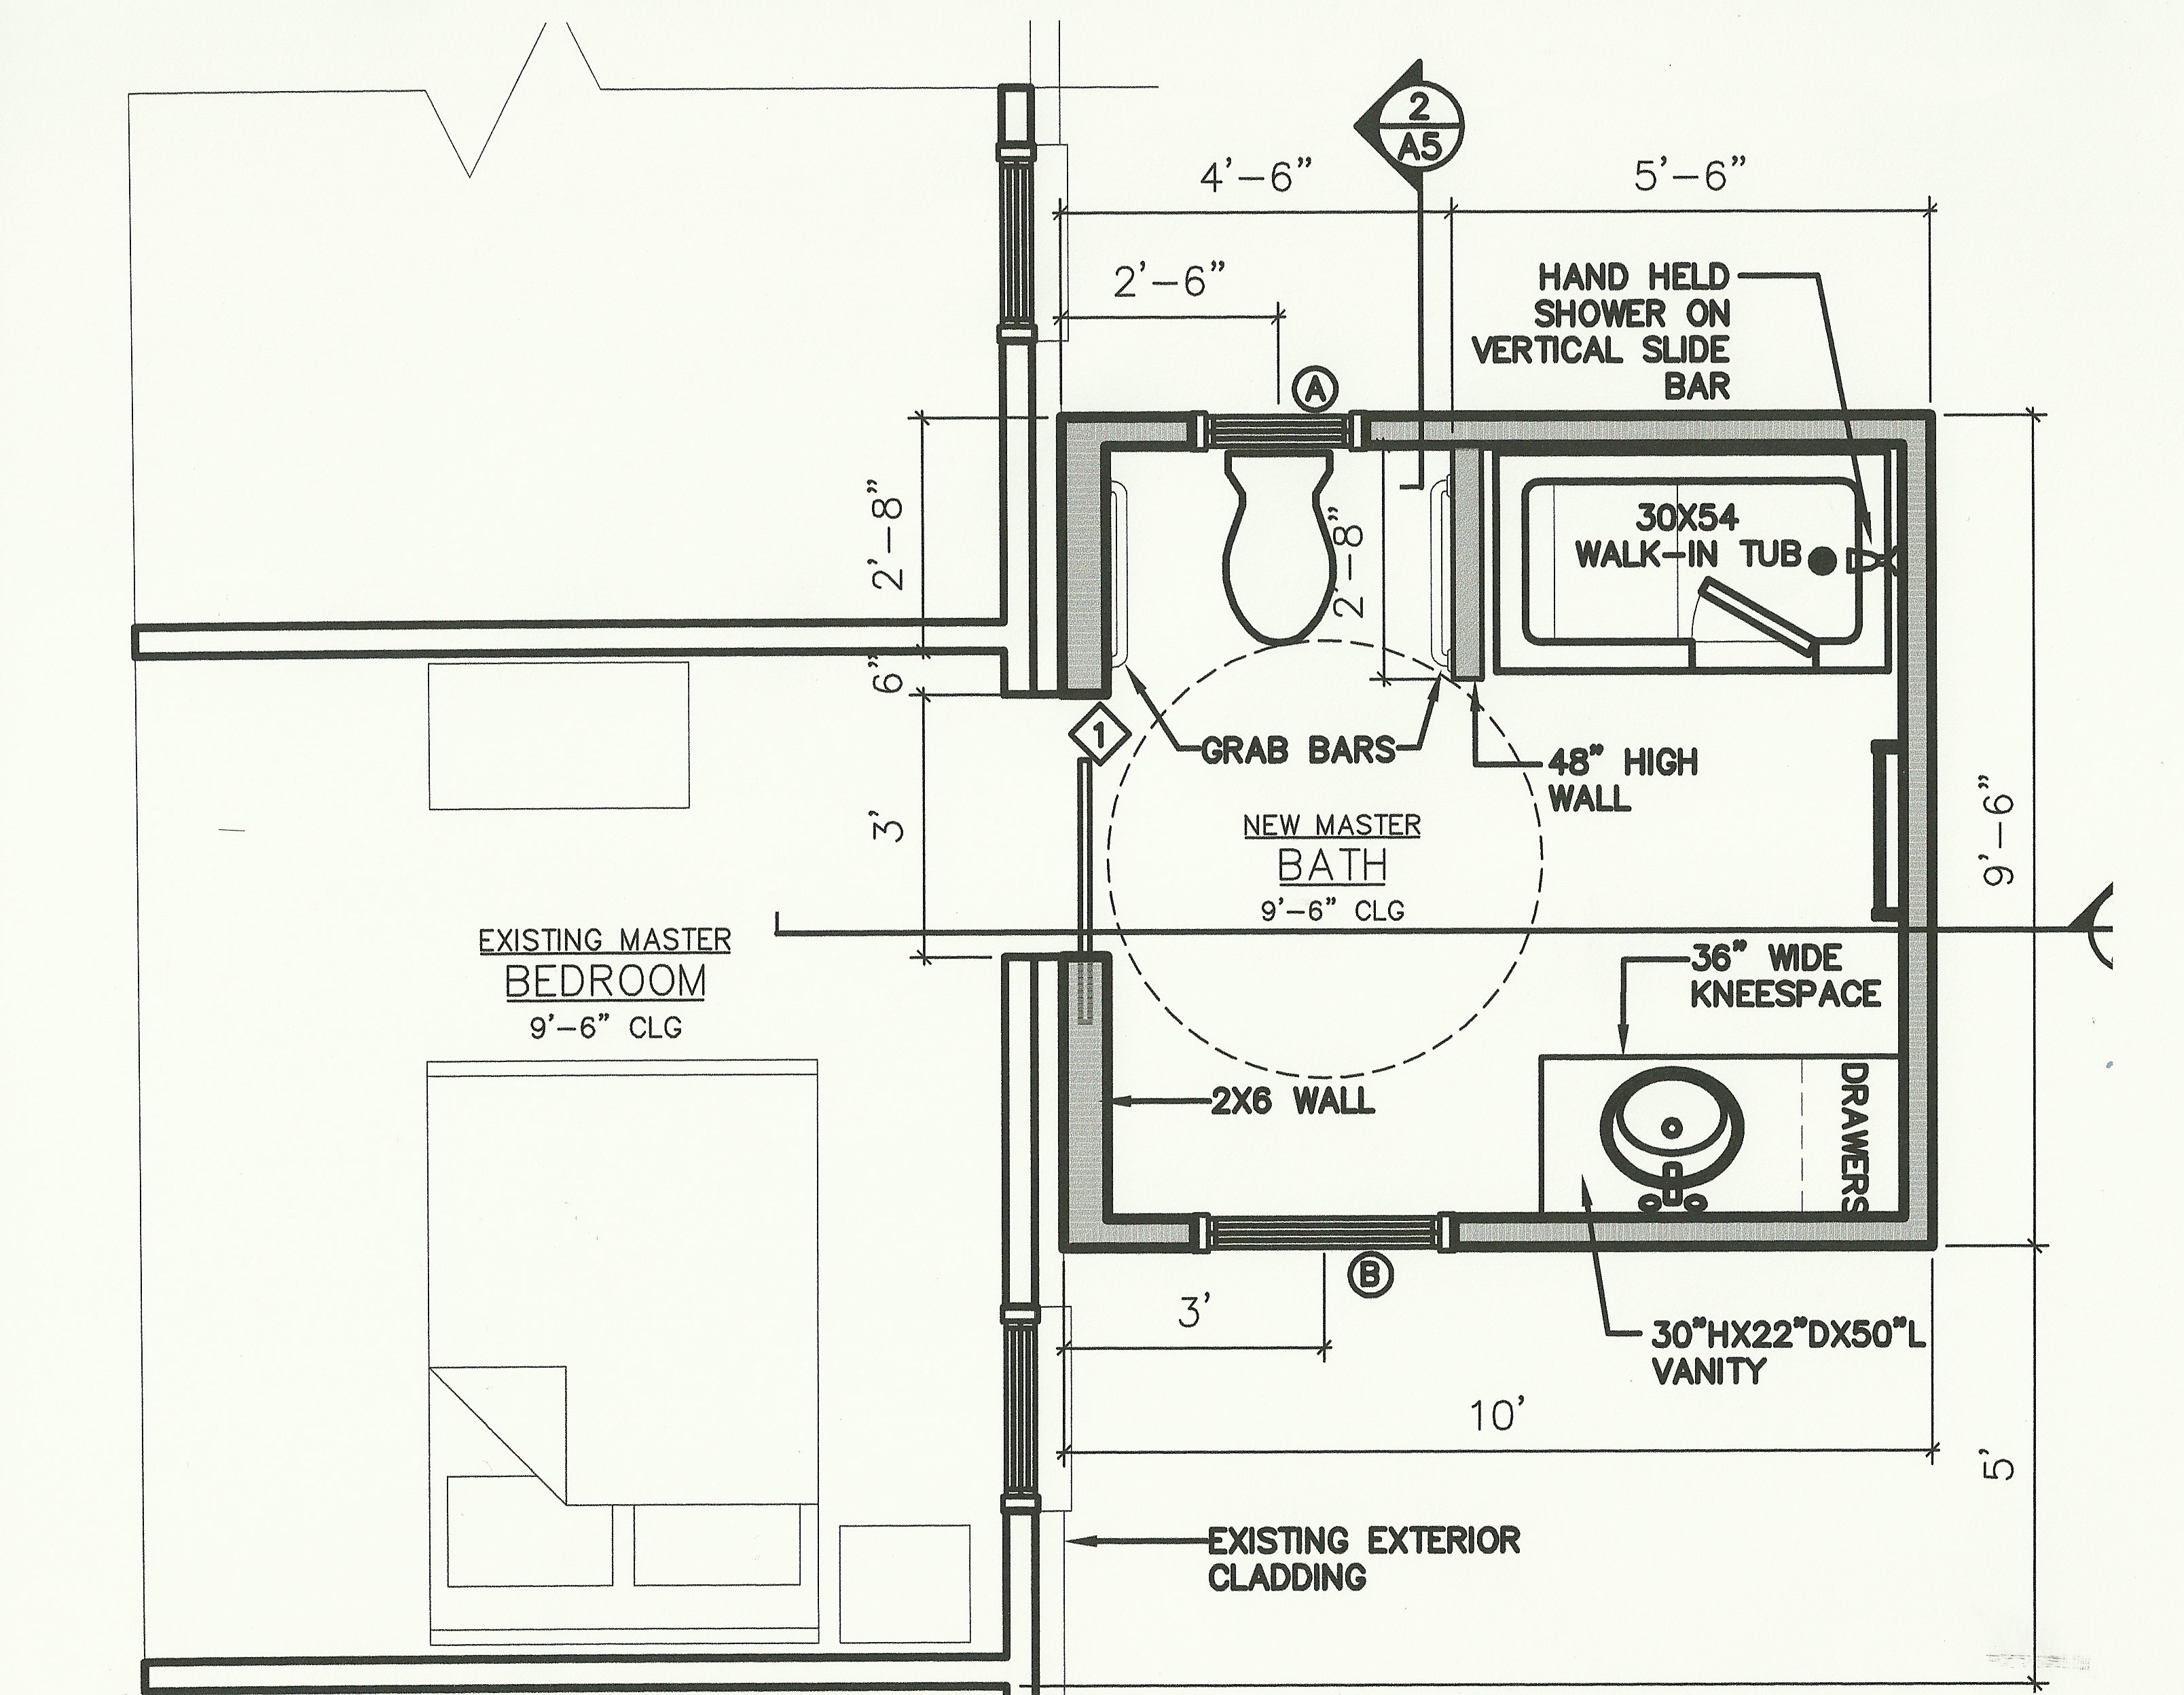 Residential Ada Bathroom Floor Plans Quotes